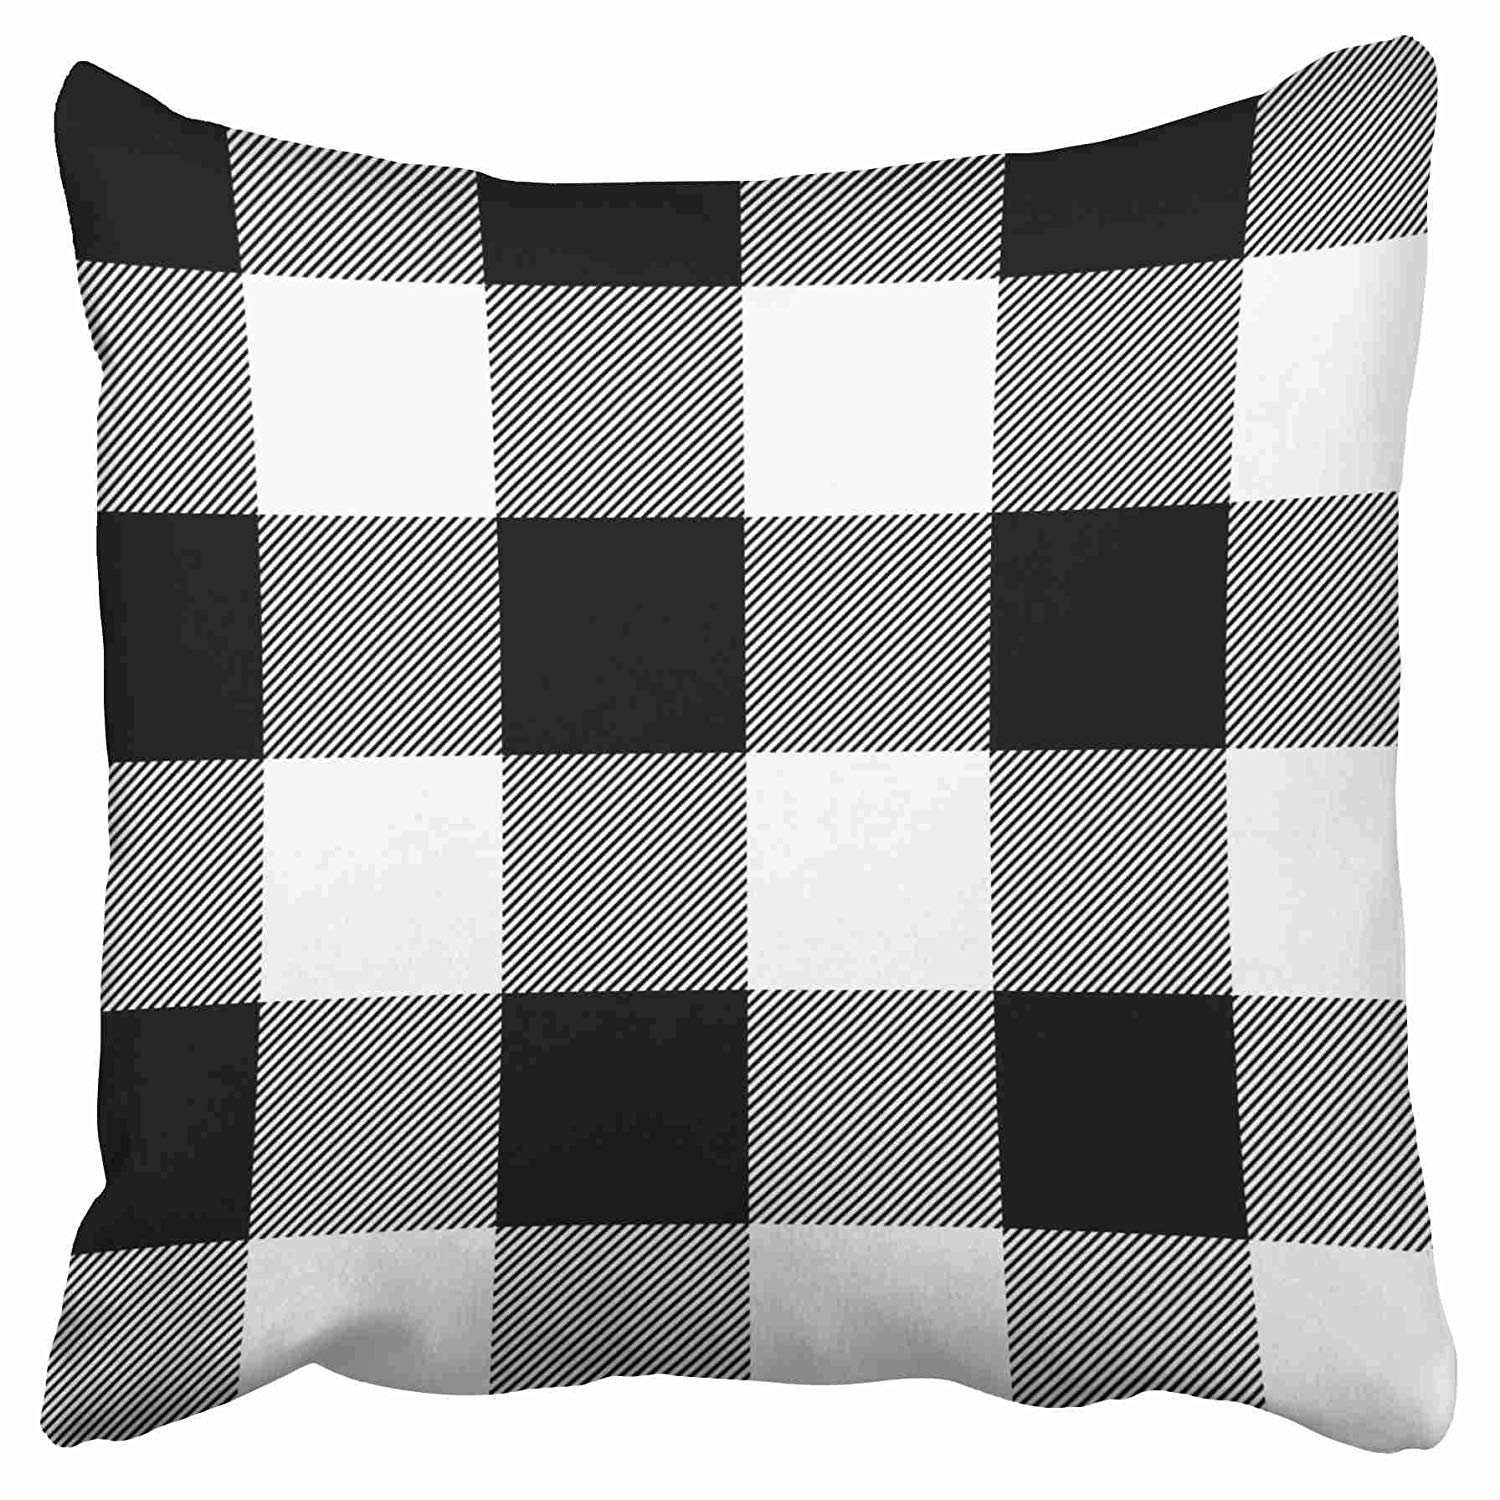 eccot rustic black and white buffalo check plaid outdoor pillow case pillow cover 16x16 inch walmart com